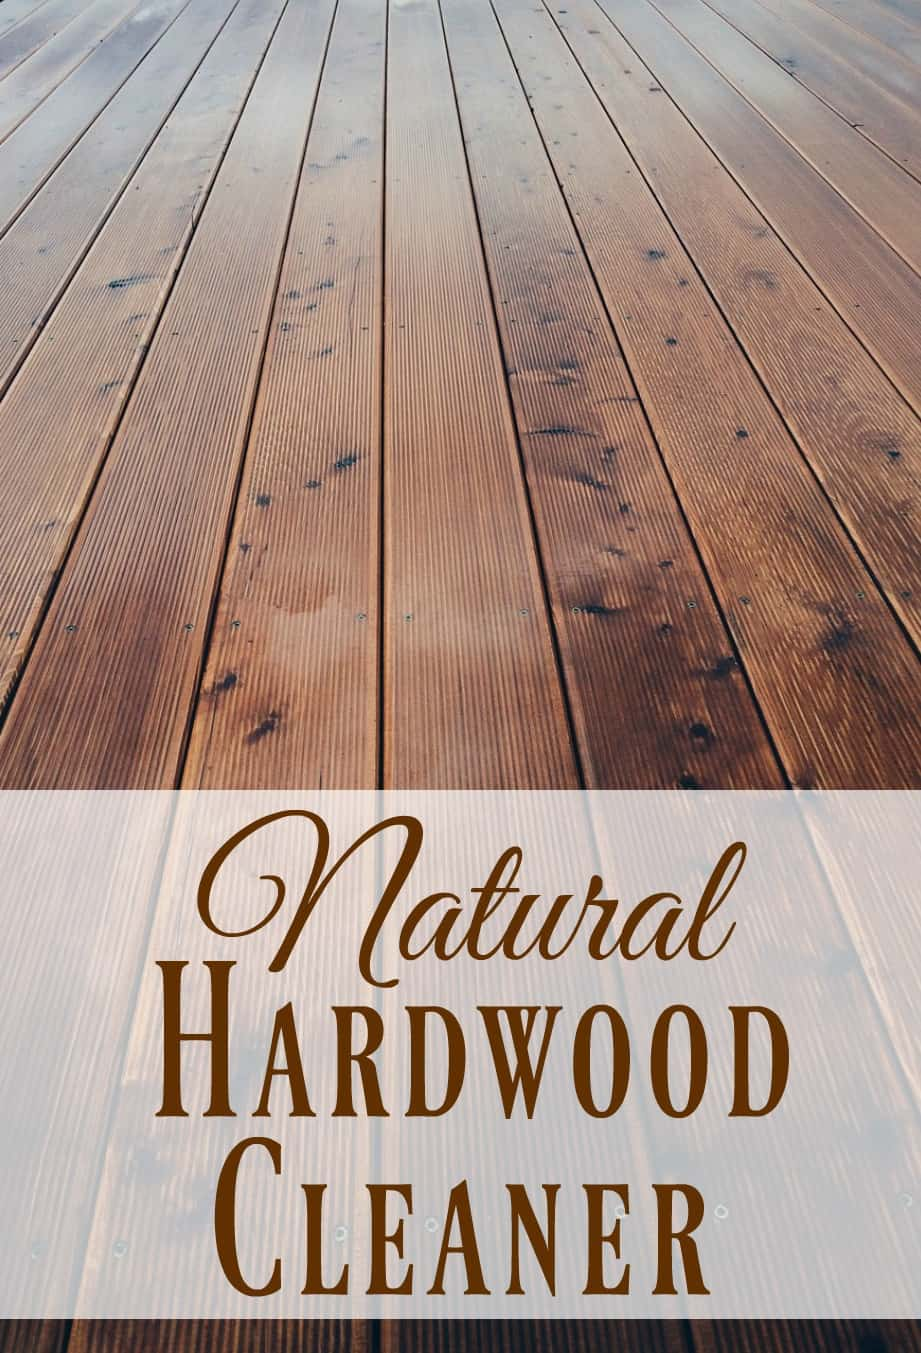 Natural Hardwood Cleaner - Whip up this hardwood cleaner with just a few ingredients and you'll have a toxin free cleaner that will have your floors shining! #wood #hardwood #cleaner #natural #greencleaning #woodcleaner